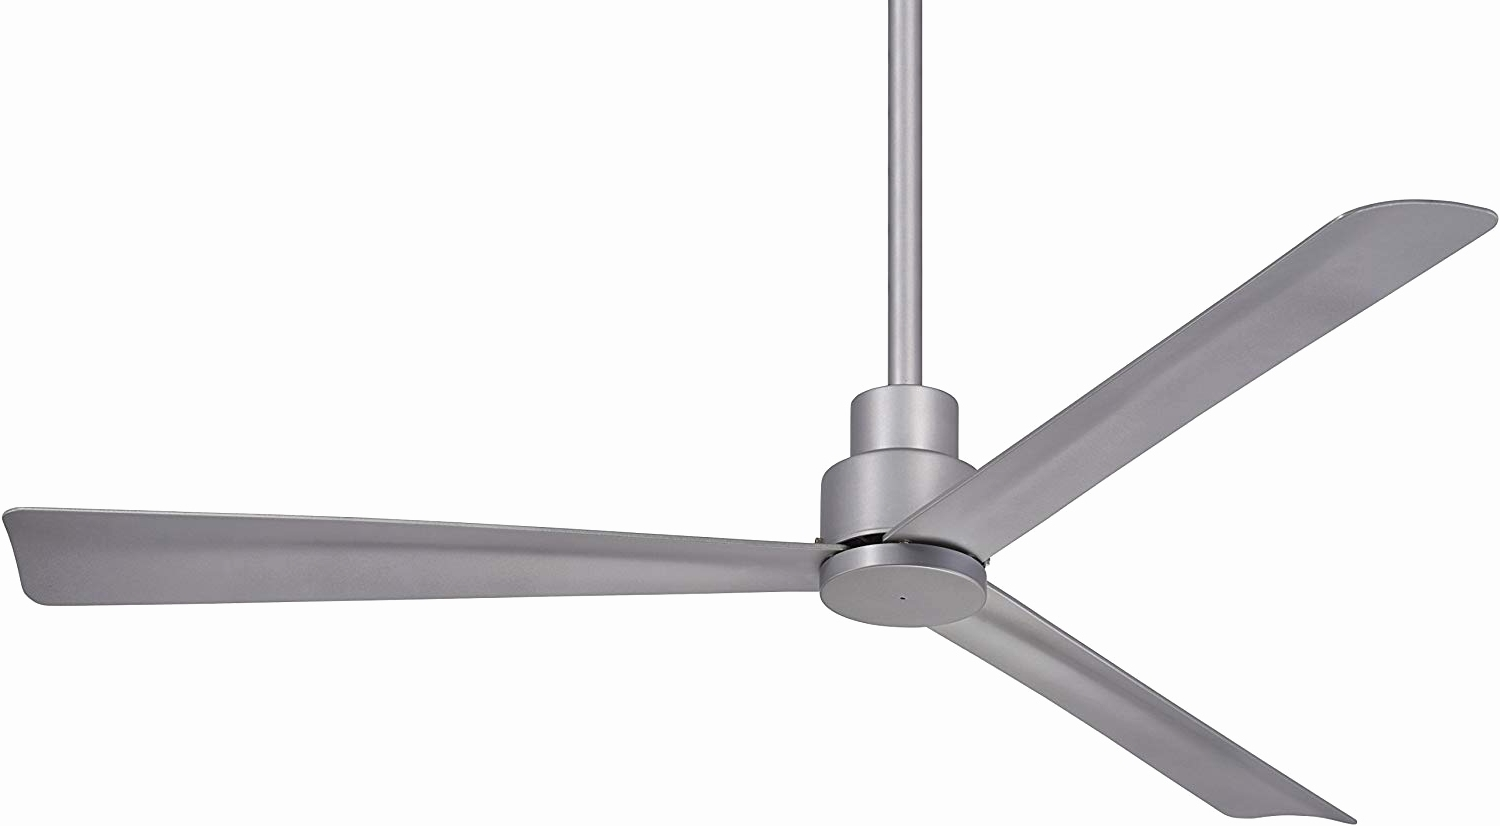 Fashionable Amazon Outdoor Ceiling Fans With Lights With Regard To 25 Fresh Black Outdoor Ceiling Fans With Lights (View 10 of 20)